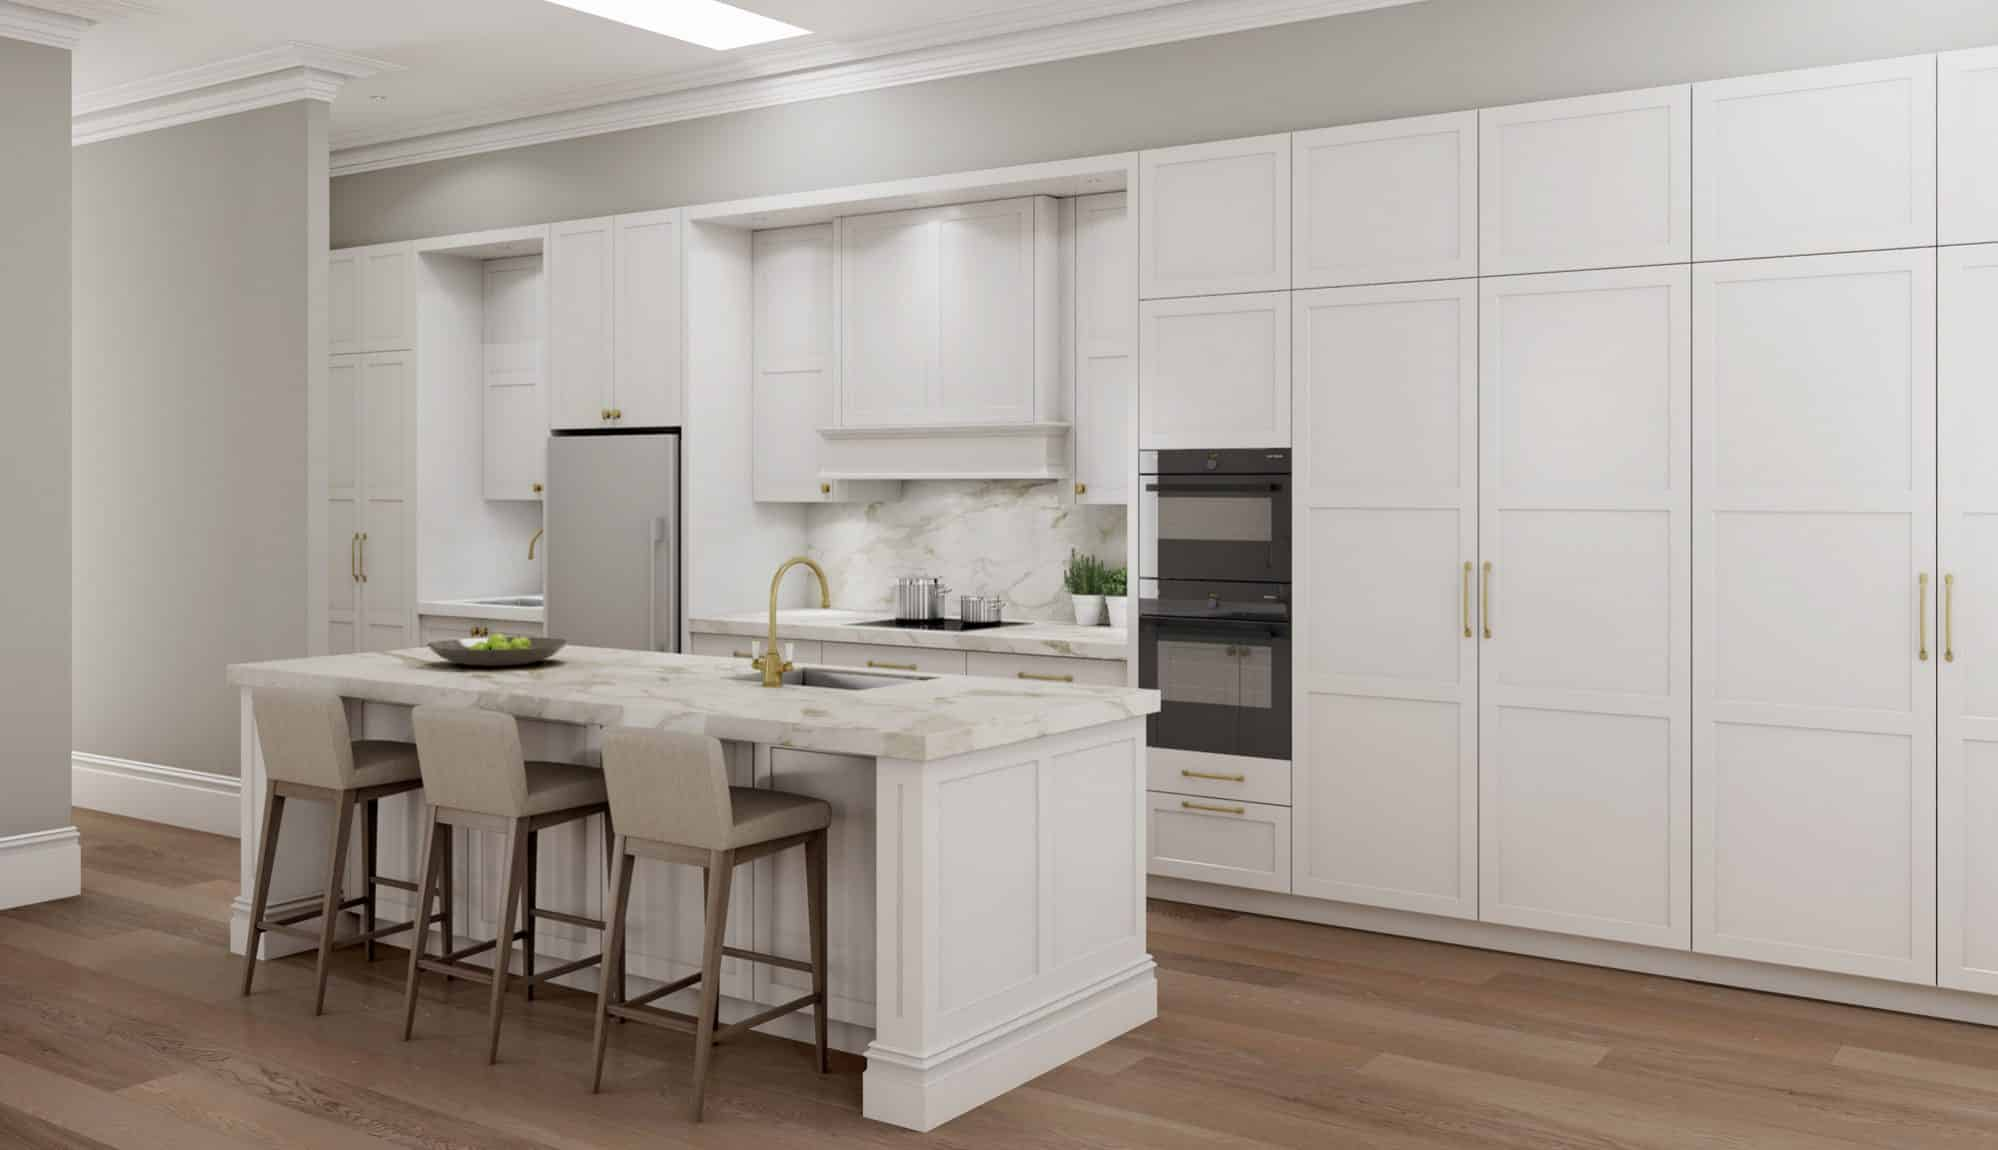 Luxury shaker profile kitchen with gold fittings